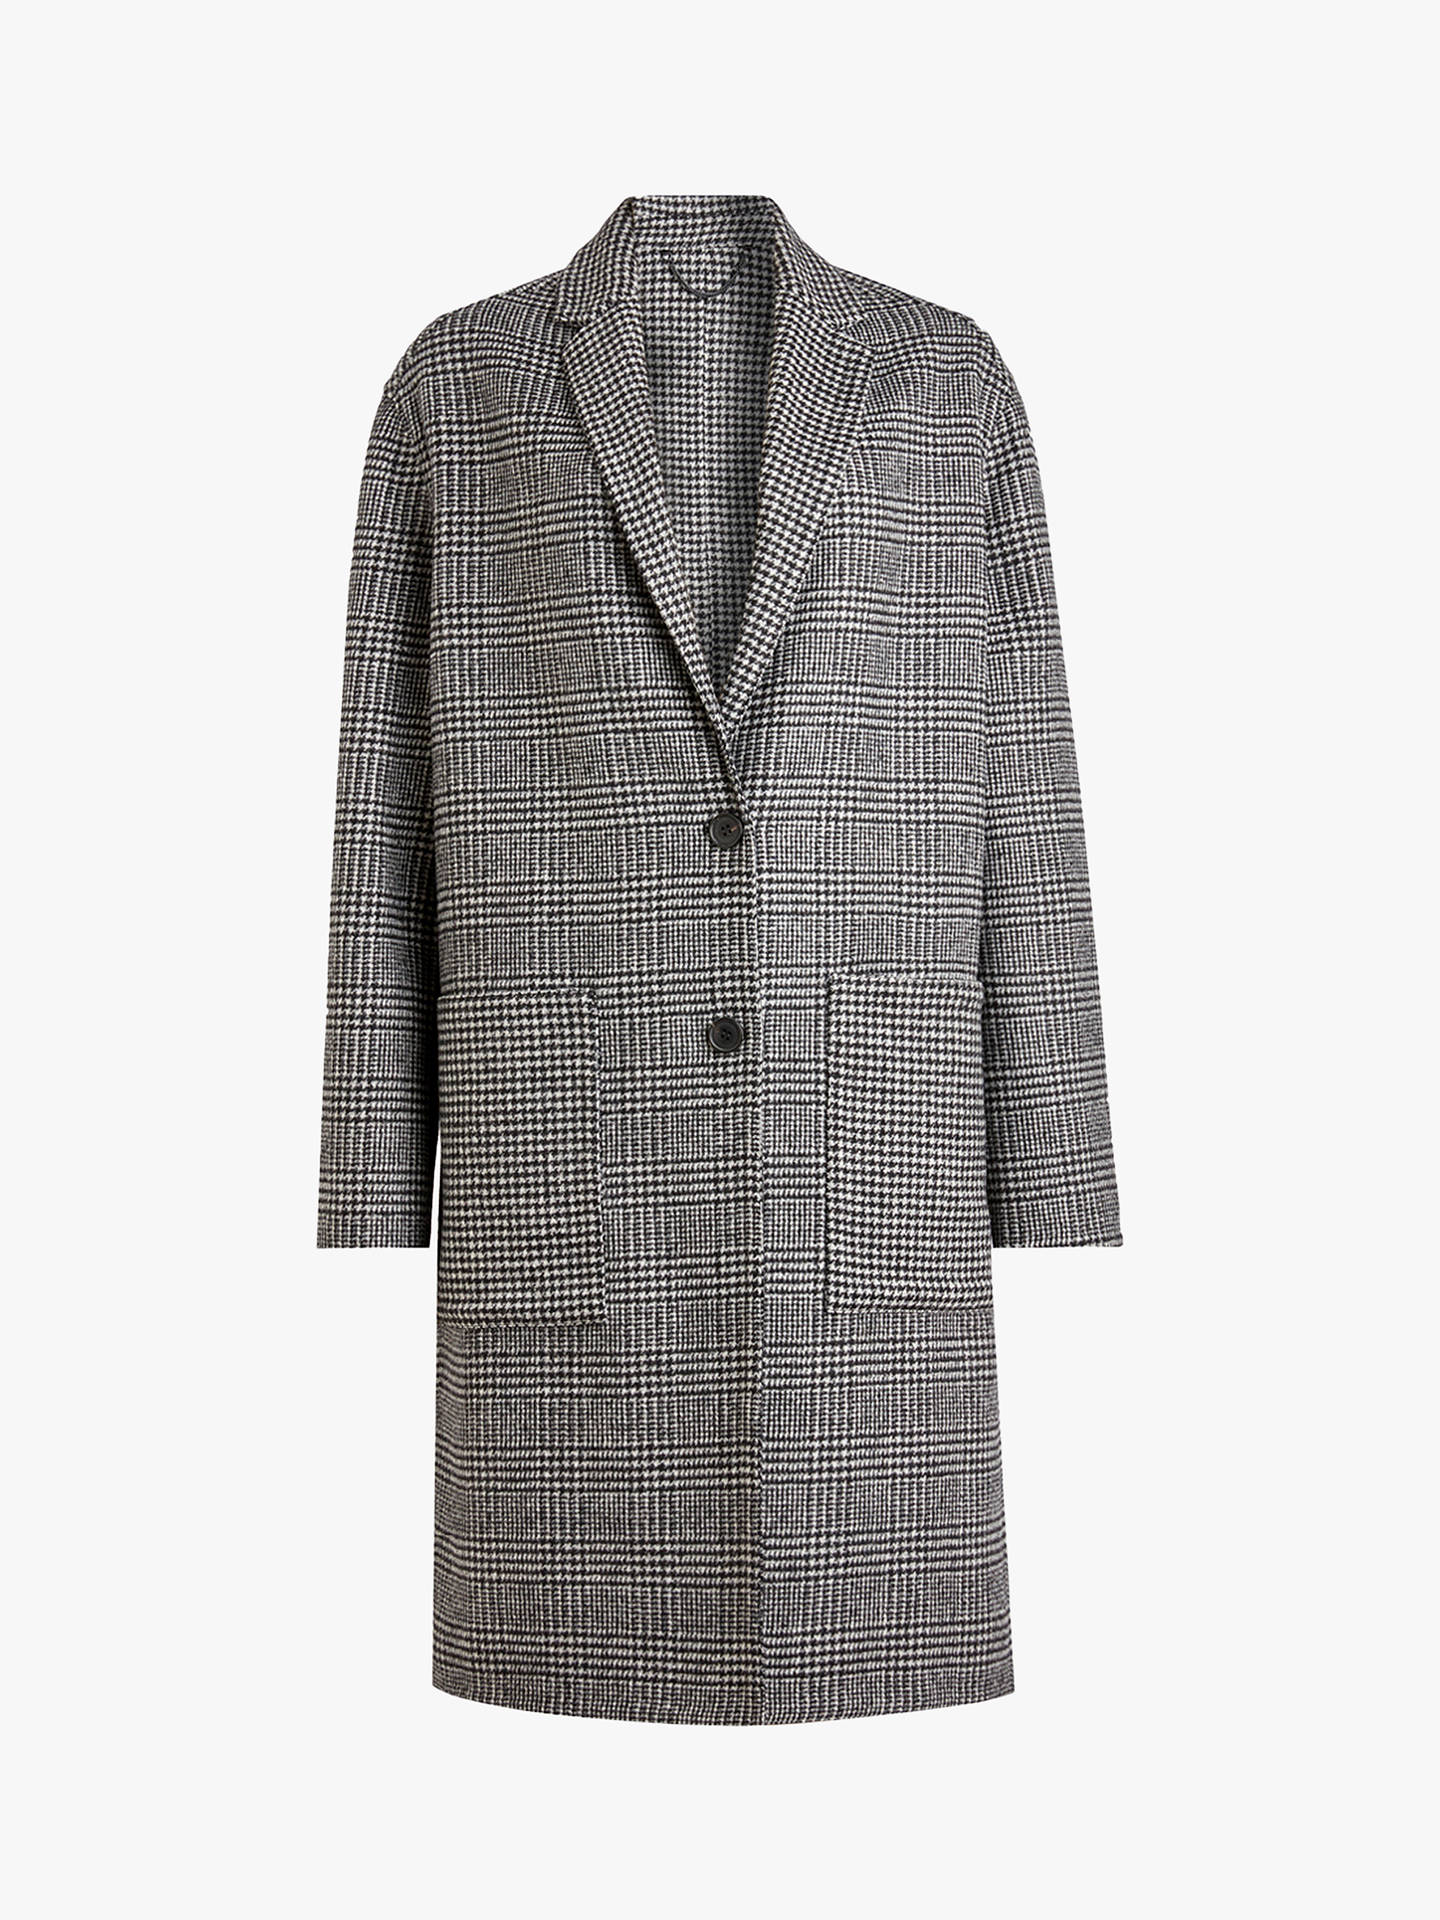 BuyAllSaints Anya Dogtooth Check Coat, Black/White, S Online at johnlewis.com